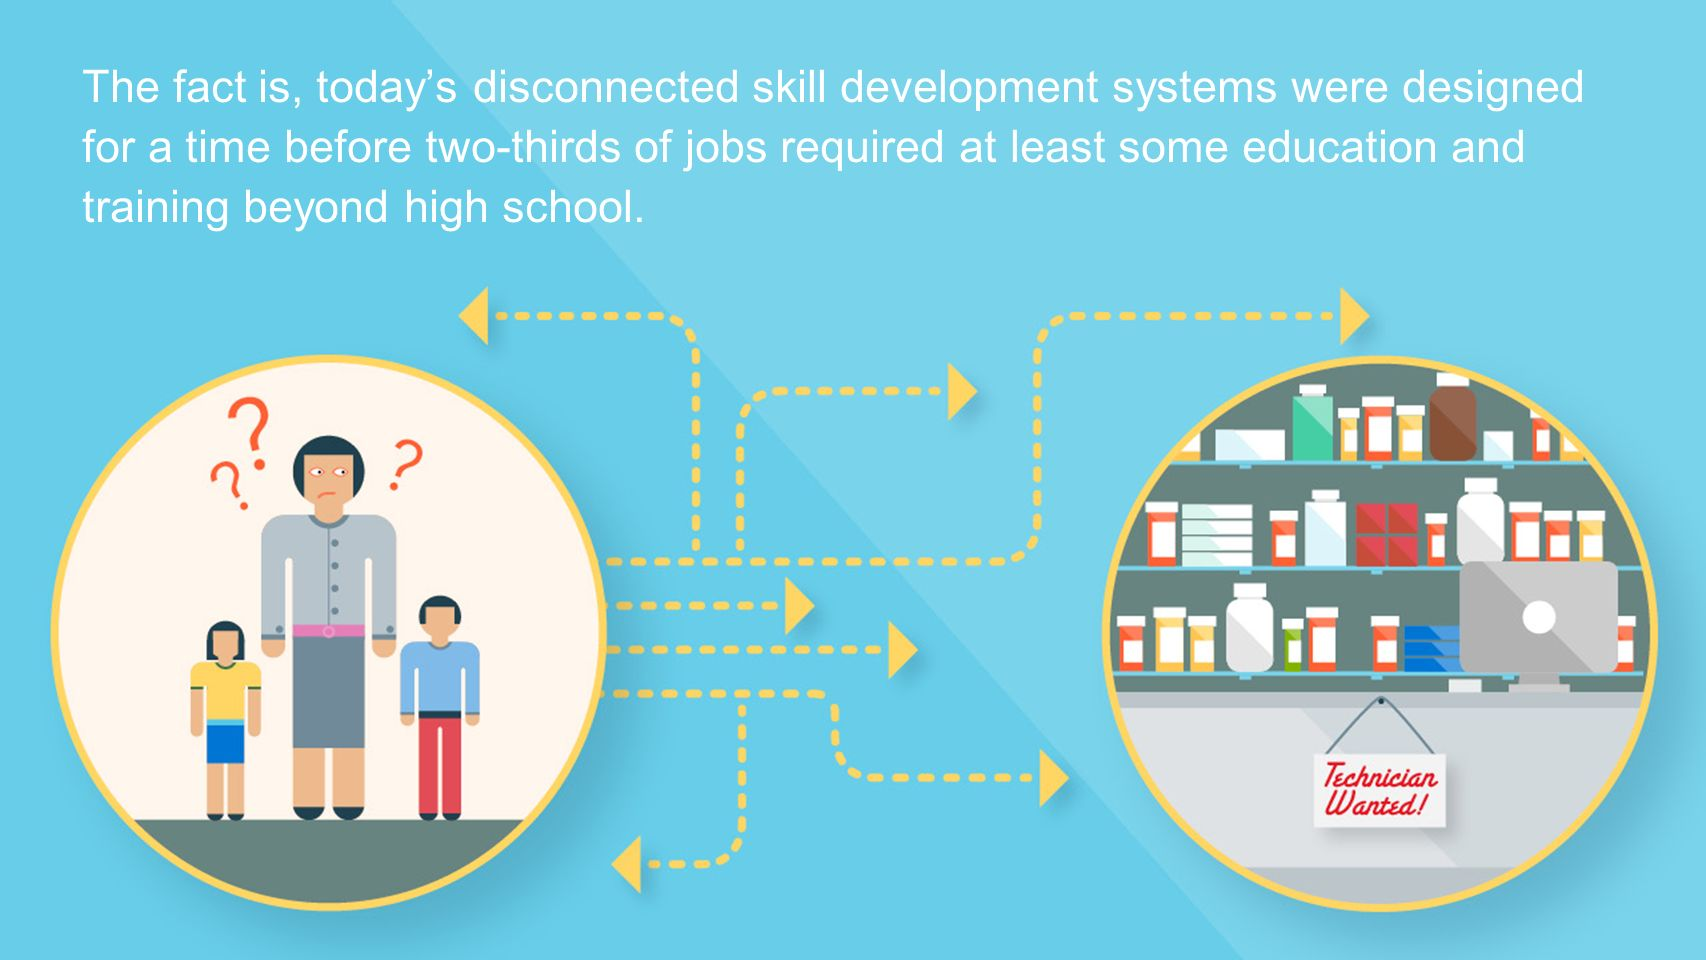 The fact is, today's disconnected skill development systems were designed for a time before two-thirds of jobs required at least some education and training beyond high school.